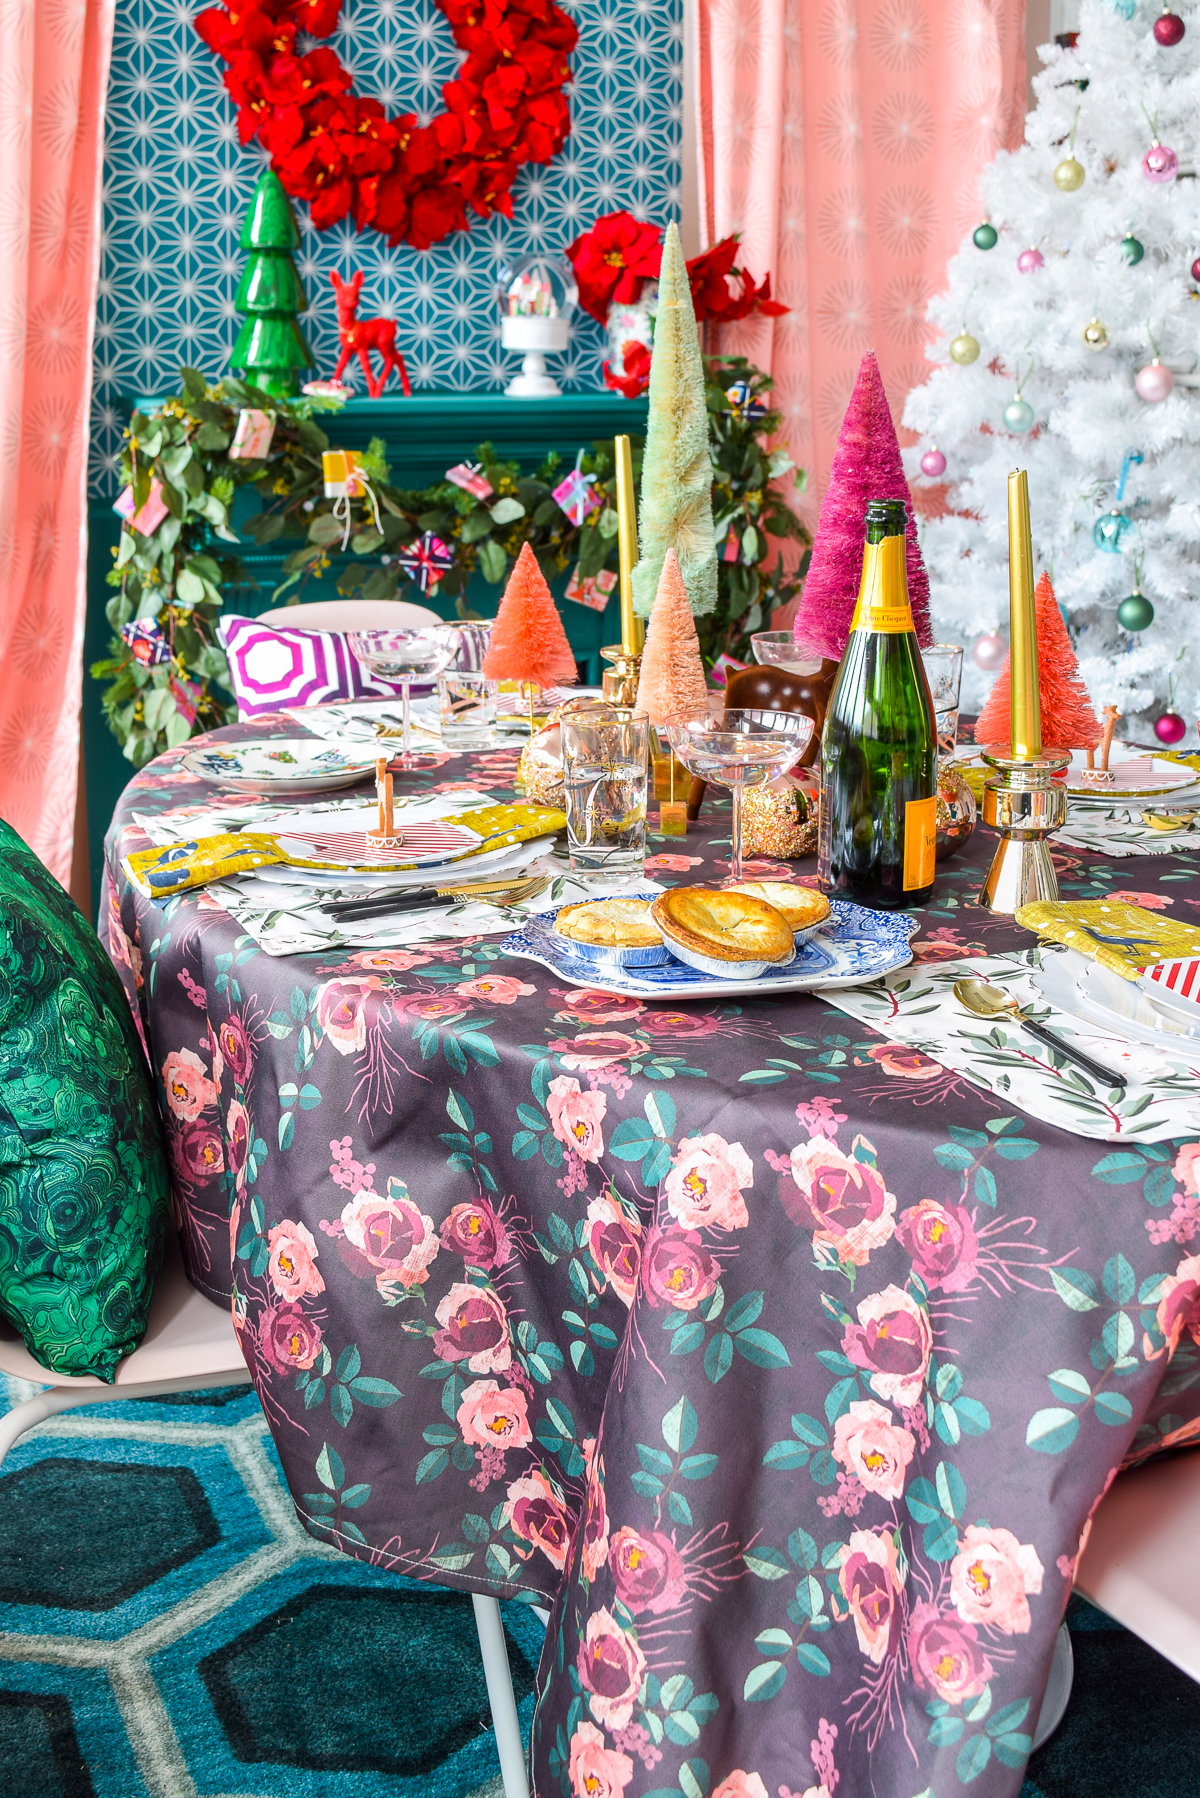 Hosting a Luxurious Christmas Dinner Party is as easy as pulling the right linens and patterns, and creating a warm and welcoming palette in your home. Come see what the heck I'm talking about, and grab my super secret source for all things hostessing!